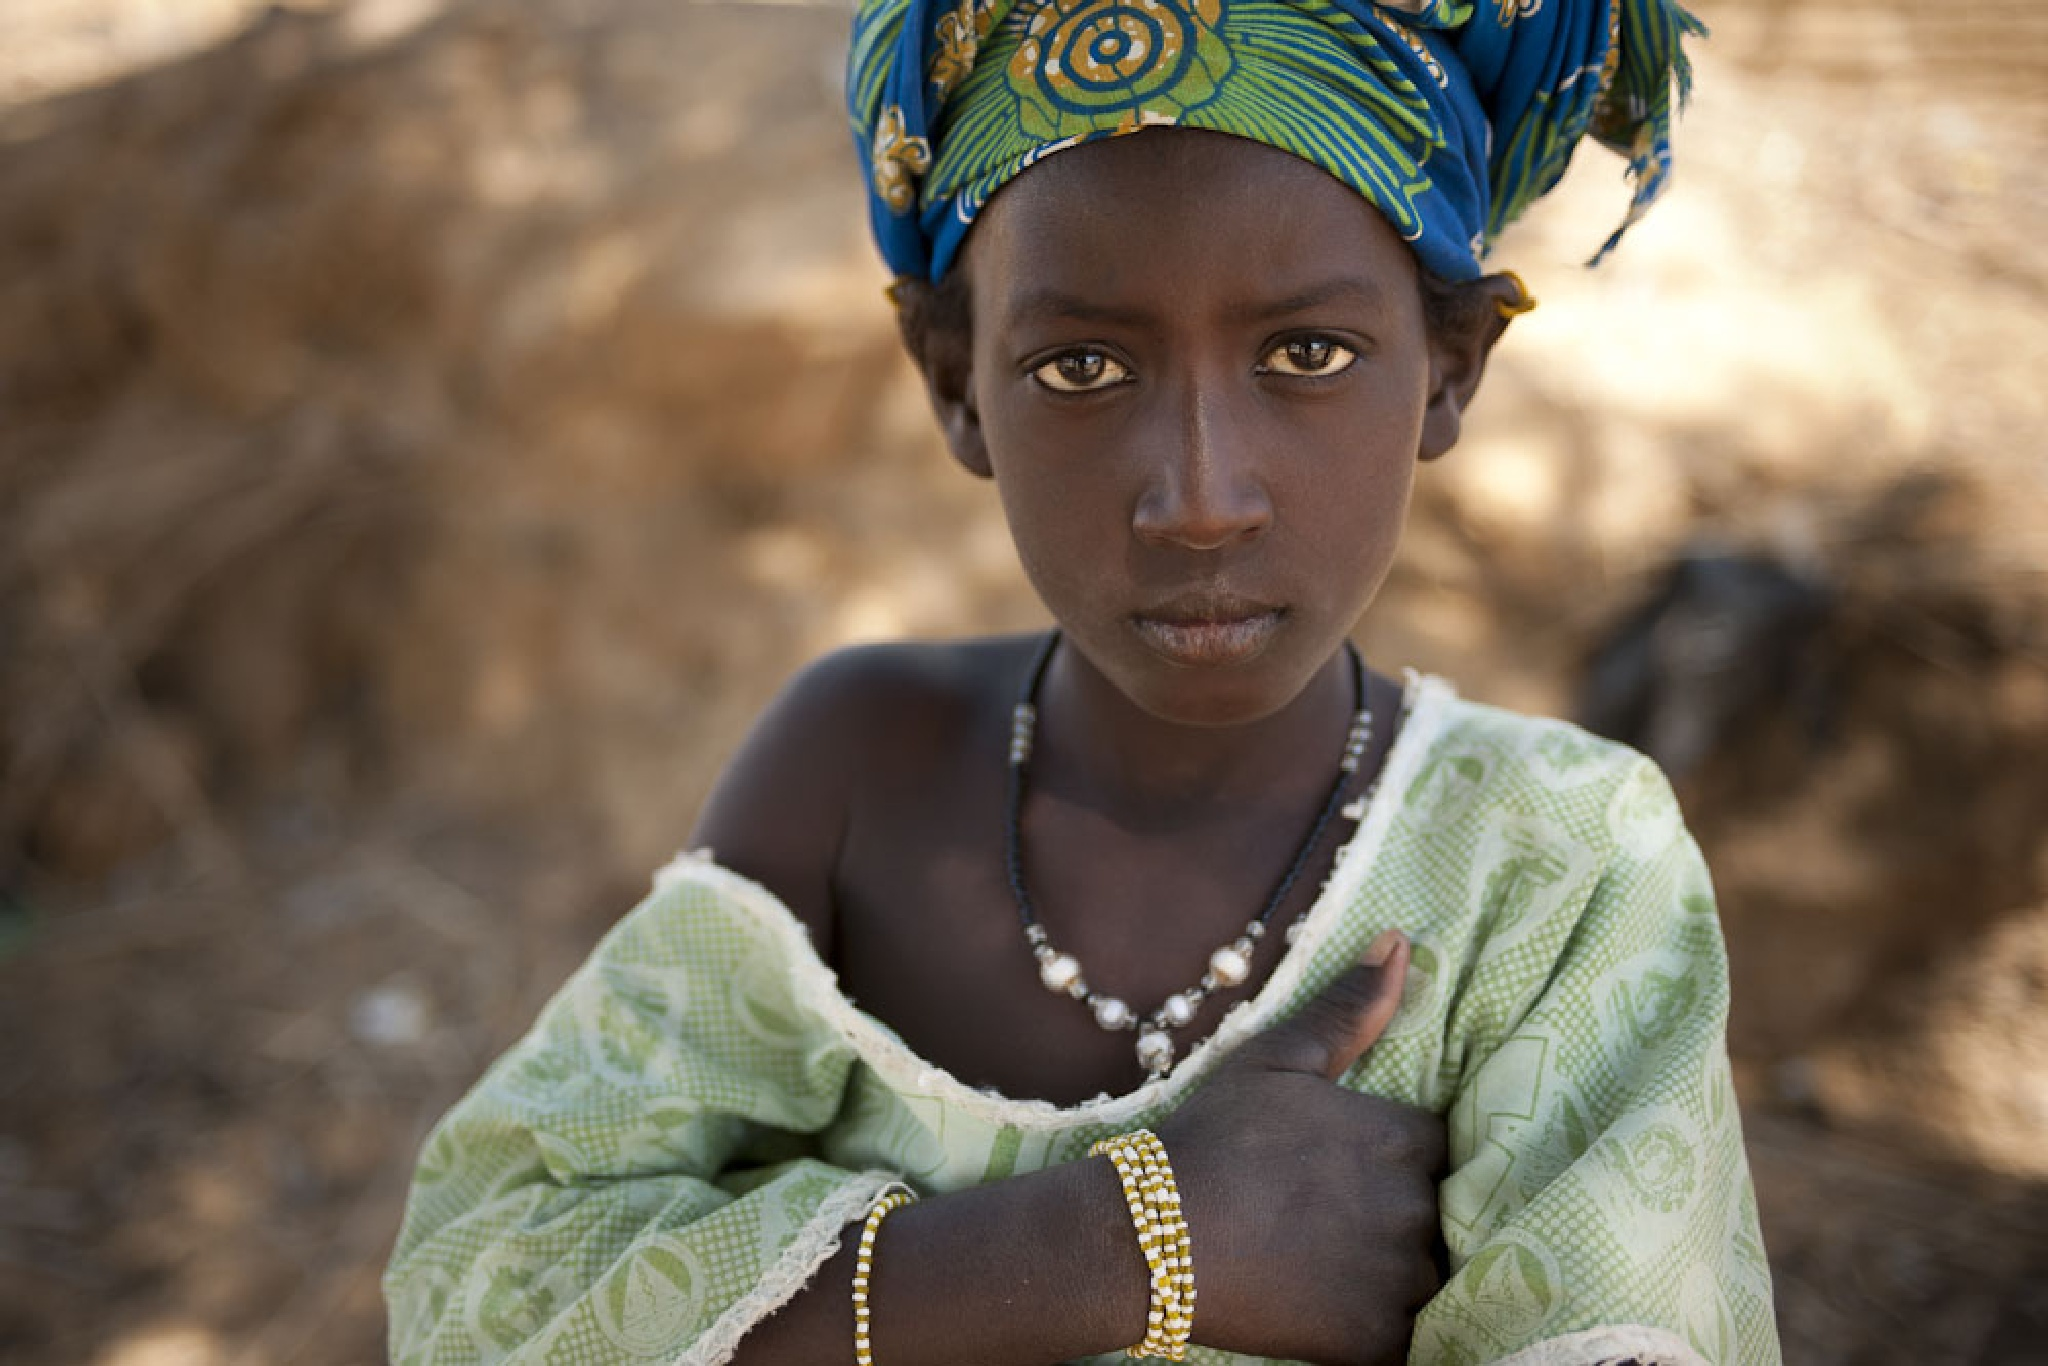 Girl in green, Mali by Martin Hartley